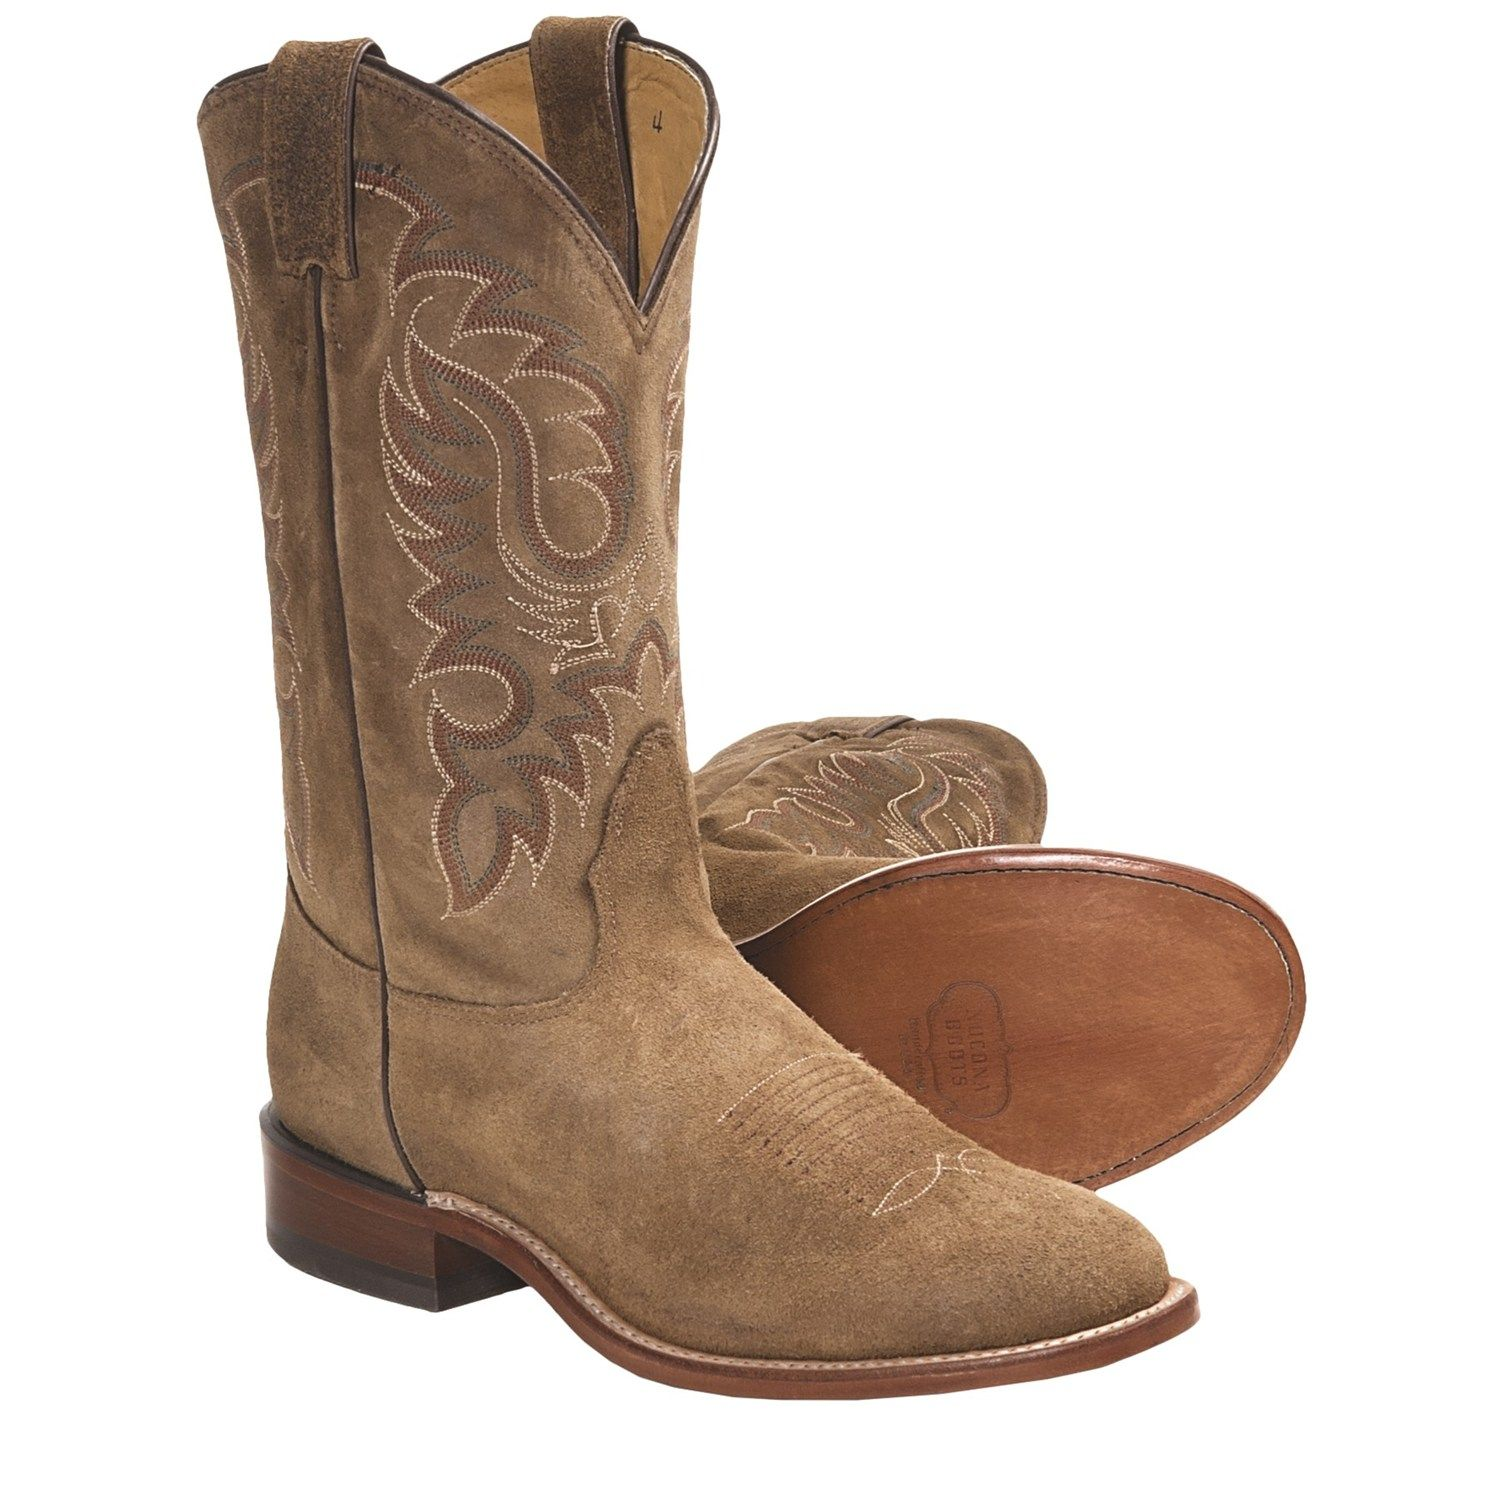 42++ Mens round toe cowboy boots ideas ideas in 2021